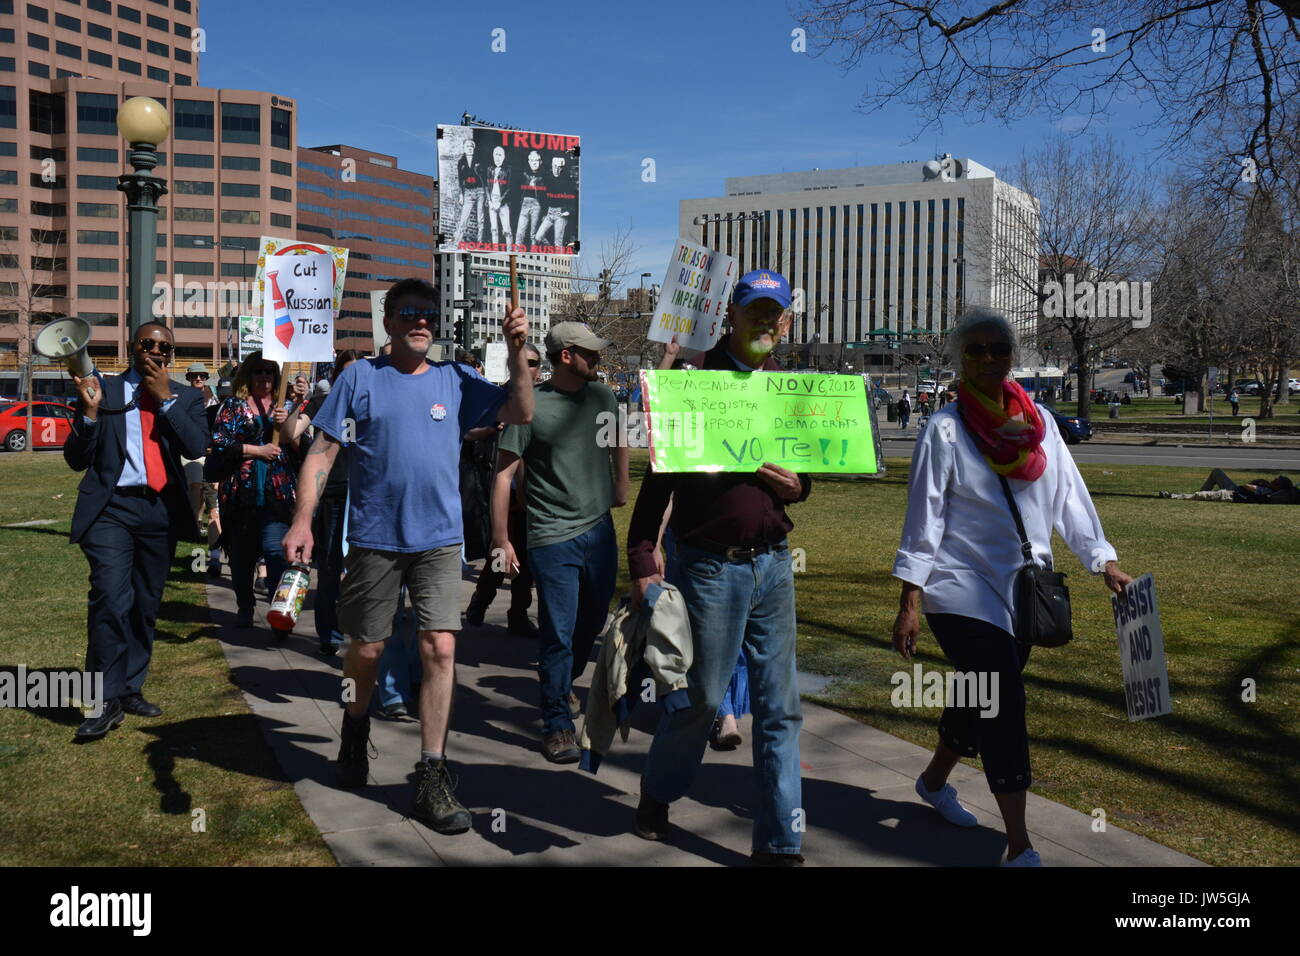 Anti Trump Protest in Denver Colorado - Stock Image